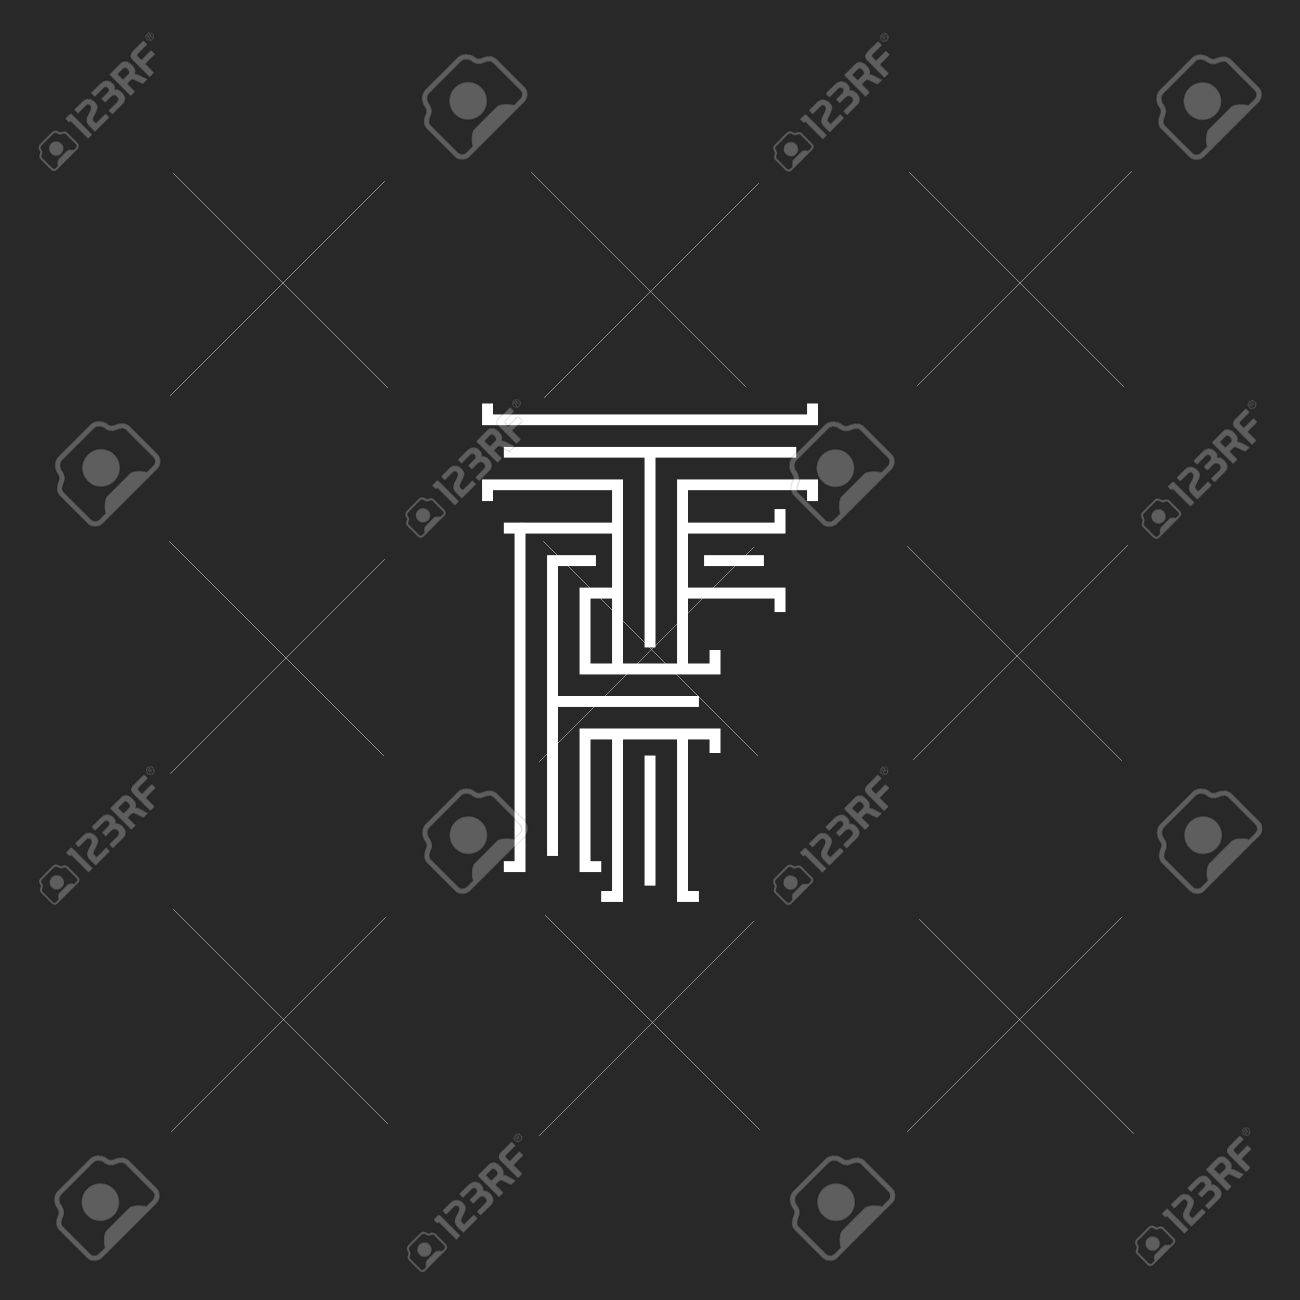 Initials TF Letters Monogram, Line Intersection Calligraphic ...